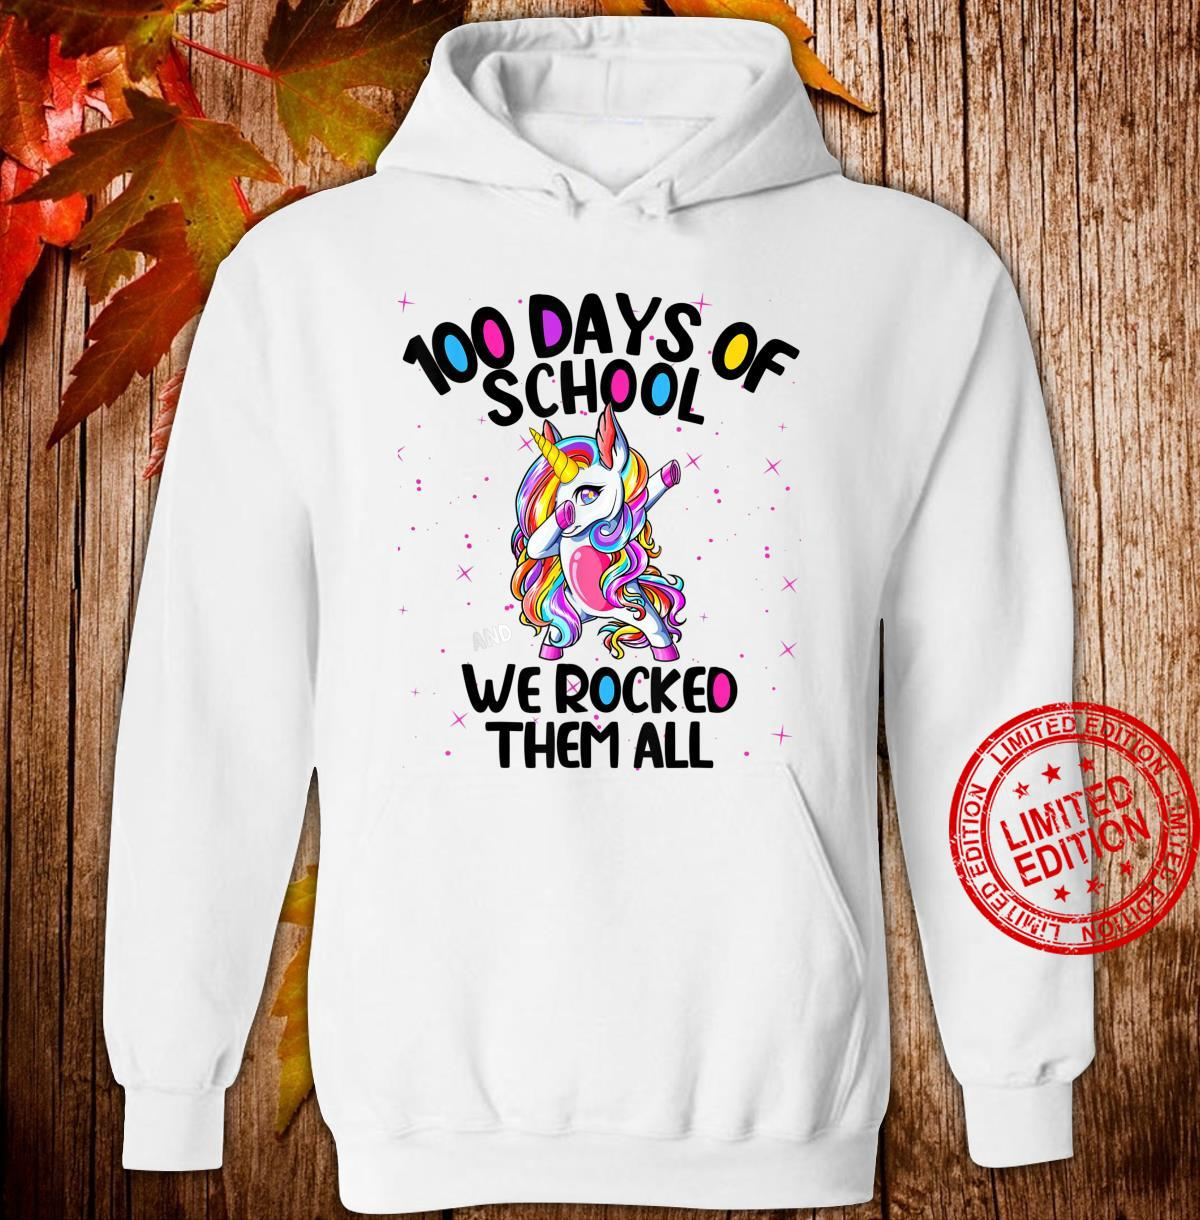 100 Days of School and We Rocked Them All Virtual Teacher Shirt hoodie